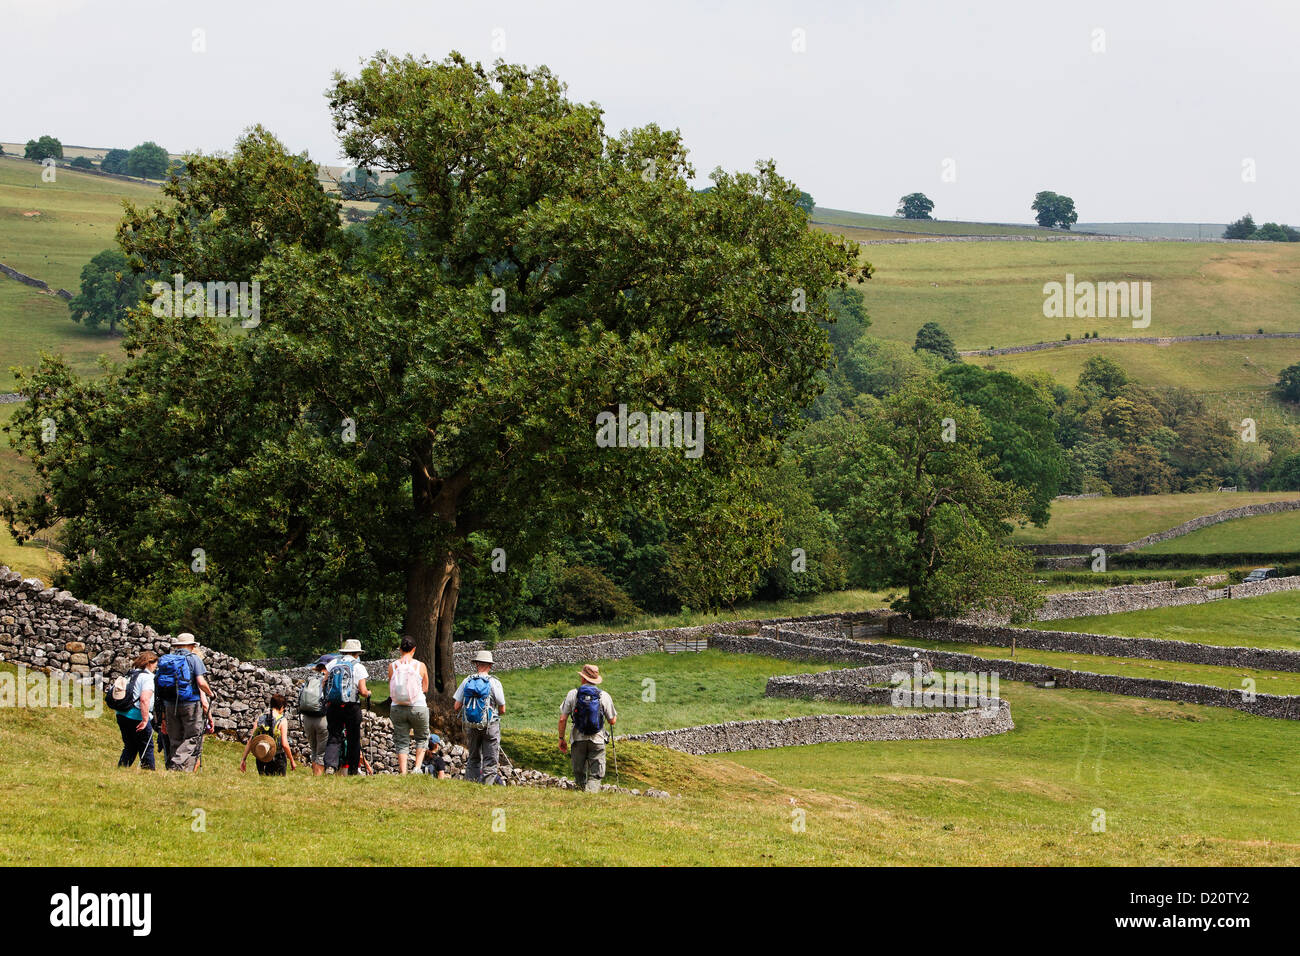 Hikers in Yorkshire Dales National Park, Yorkshire Dales, Yorkshire, England, Great Britain, Europe - Stock Image